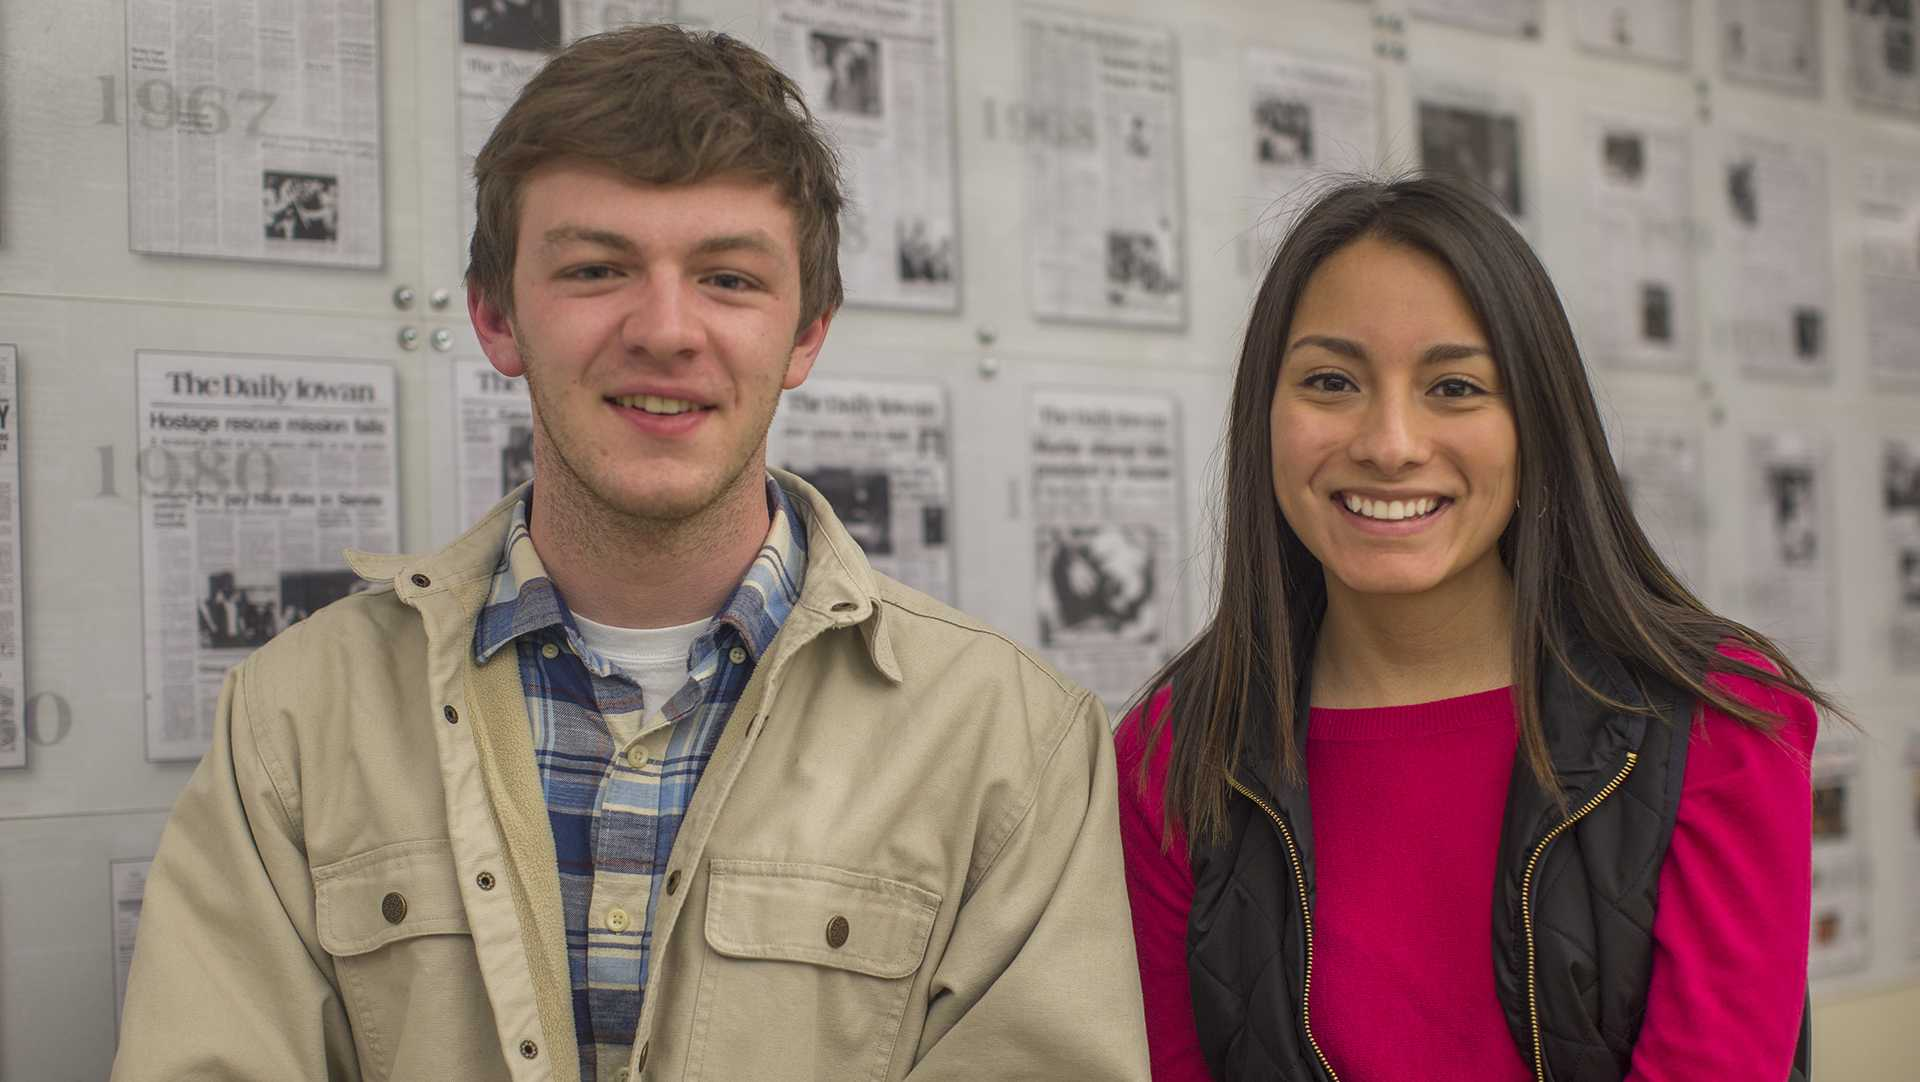 UISG President Jacob Simpson and Vice President Lilián Sánchez pose for a portrait in the Iowa City Daily Iowan Newsroom on Friday, Dec. 1, 2017. (Lily Smith/The Daily Iowan)